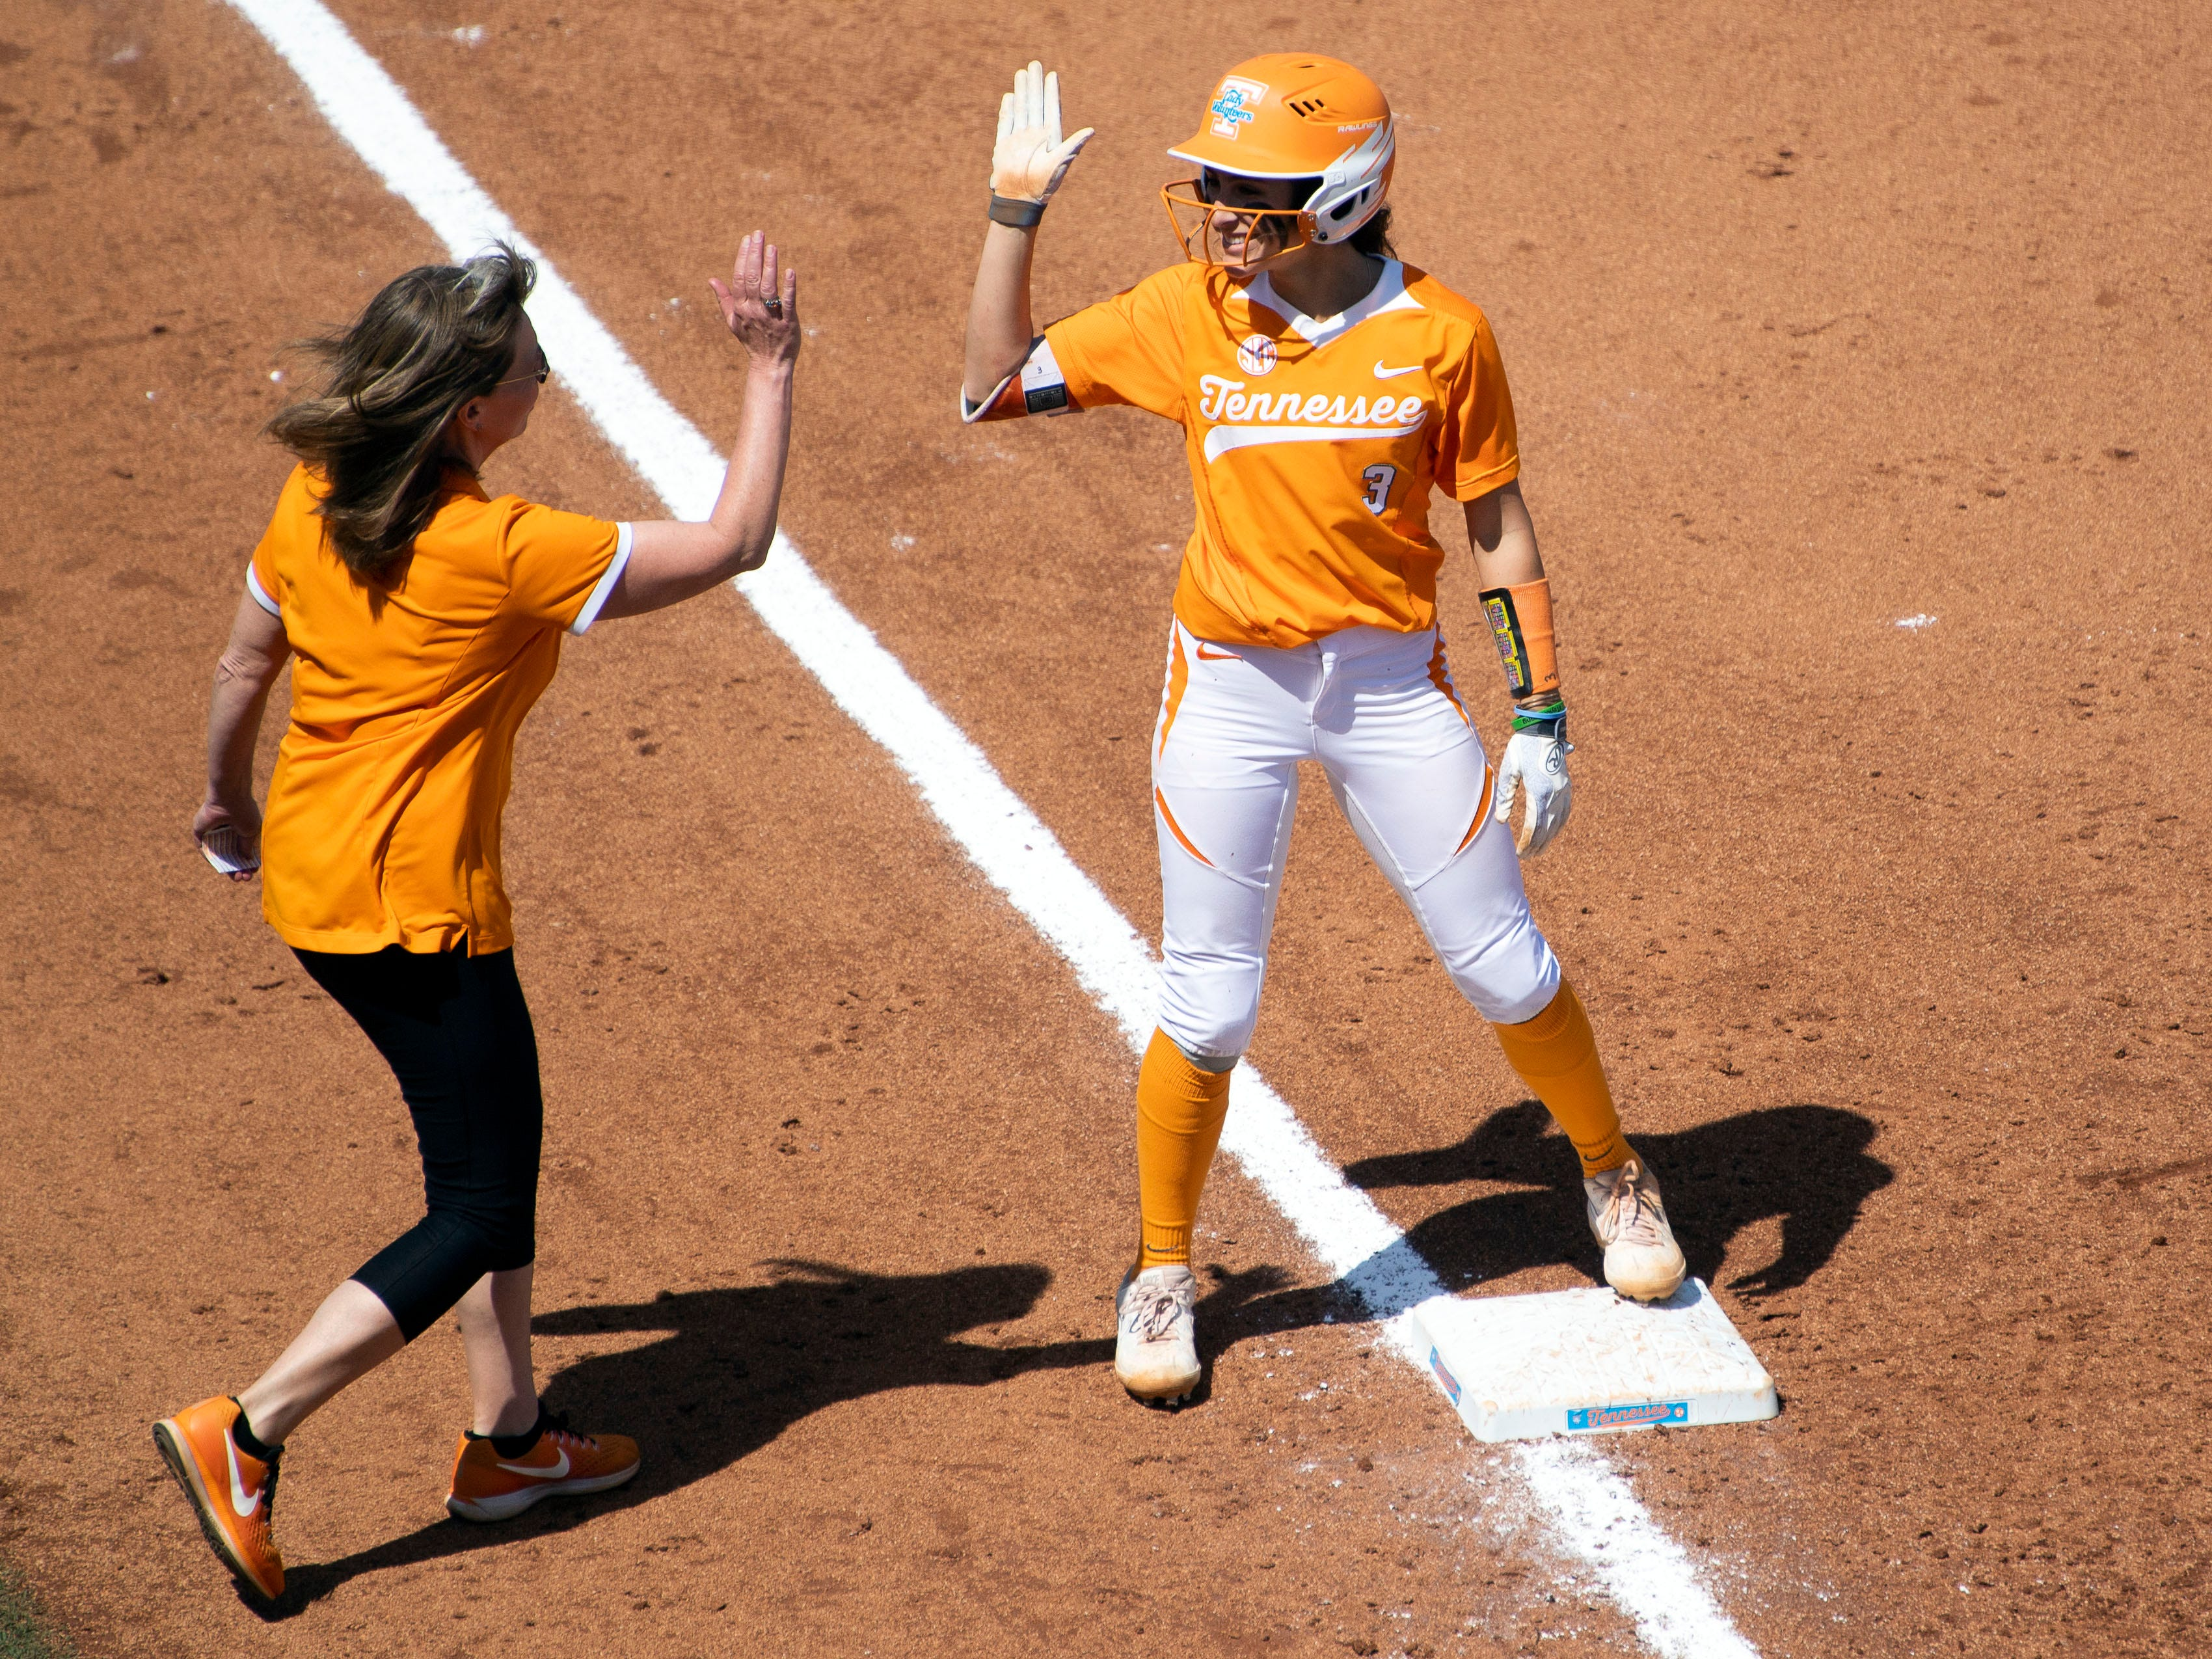 Tennessee's Kaitlin Parsons (3) is congratulated by co-head coach Karen Weekly after Parson's bunt resulted in a triple and two runs for Tennessee in the game against Mississippi State at Sherri Parker Lee Stadium on Sunday, April 14, 2019.